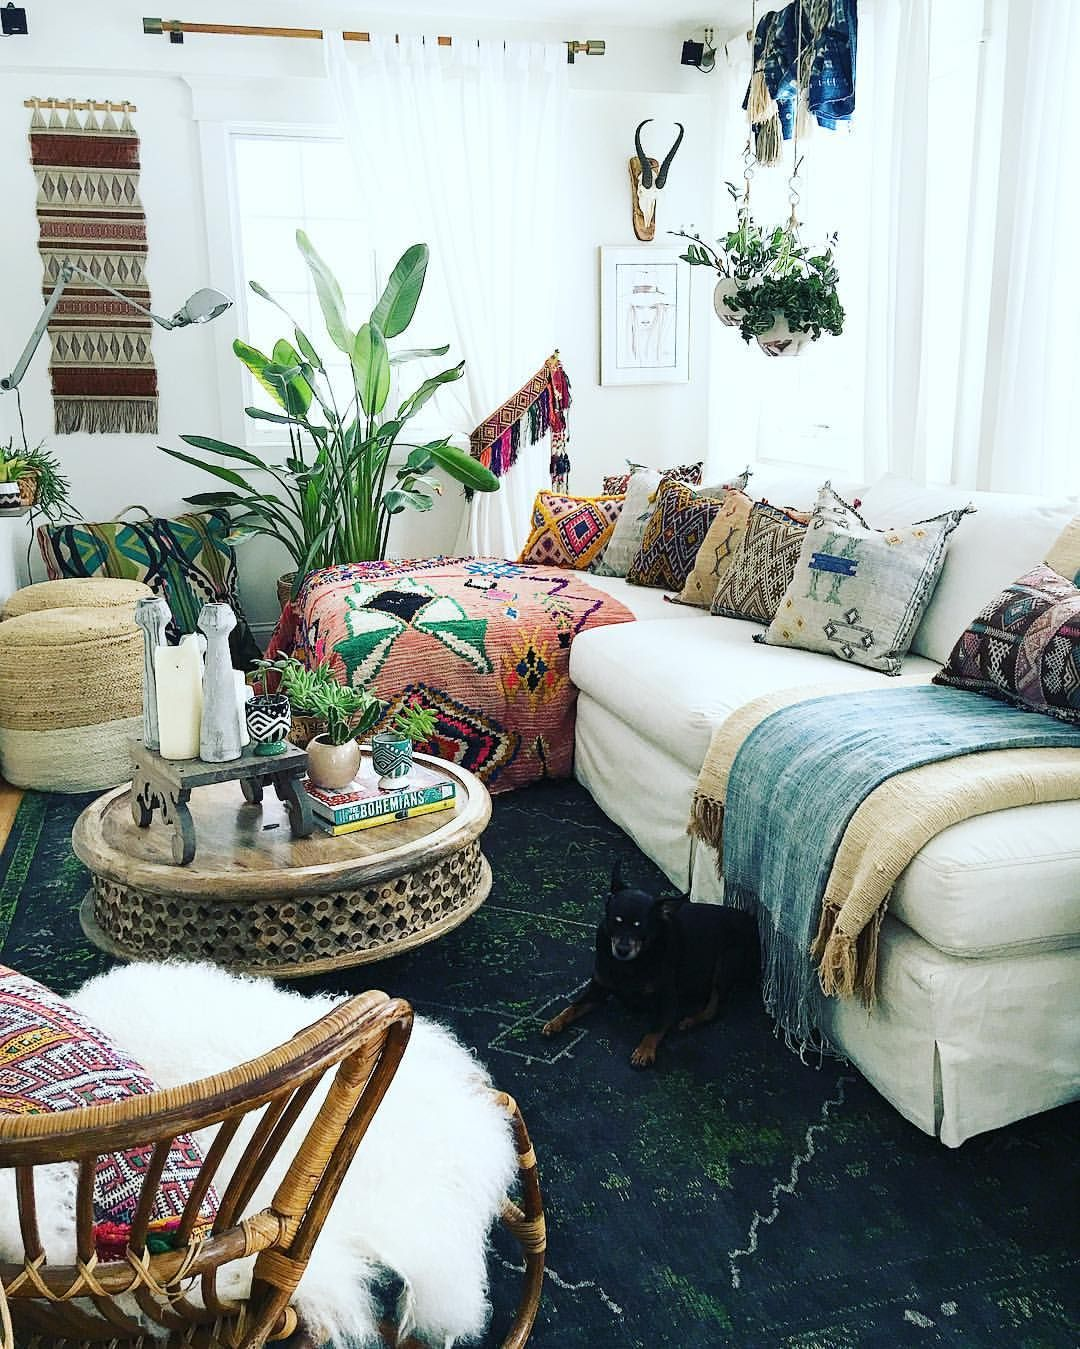 You Can Add Rugs Not Only On Floors But On Sofas Too That 39 S A Great Way To Bring Additional Pat Bohemian Style Living Room Home Decor Bohemian Living Room